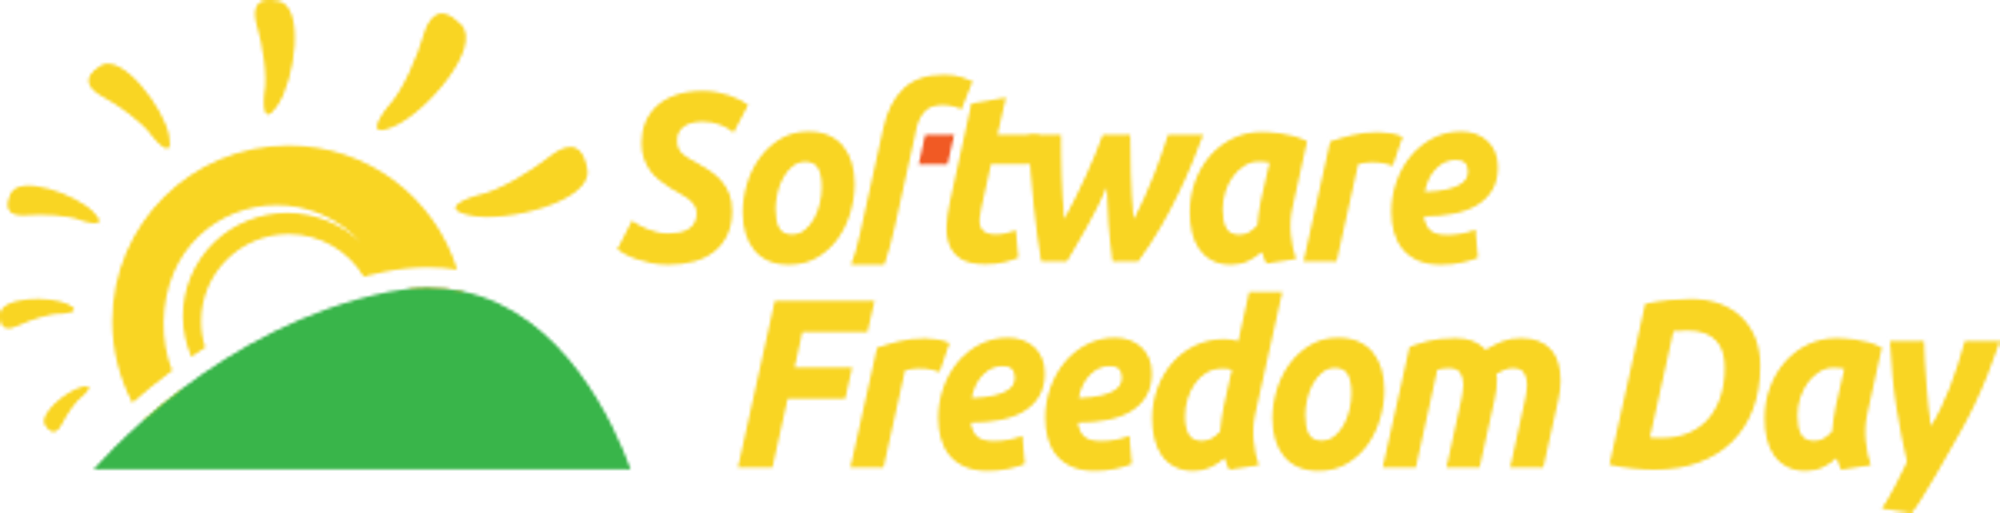 Software Freedom Day 2018